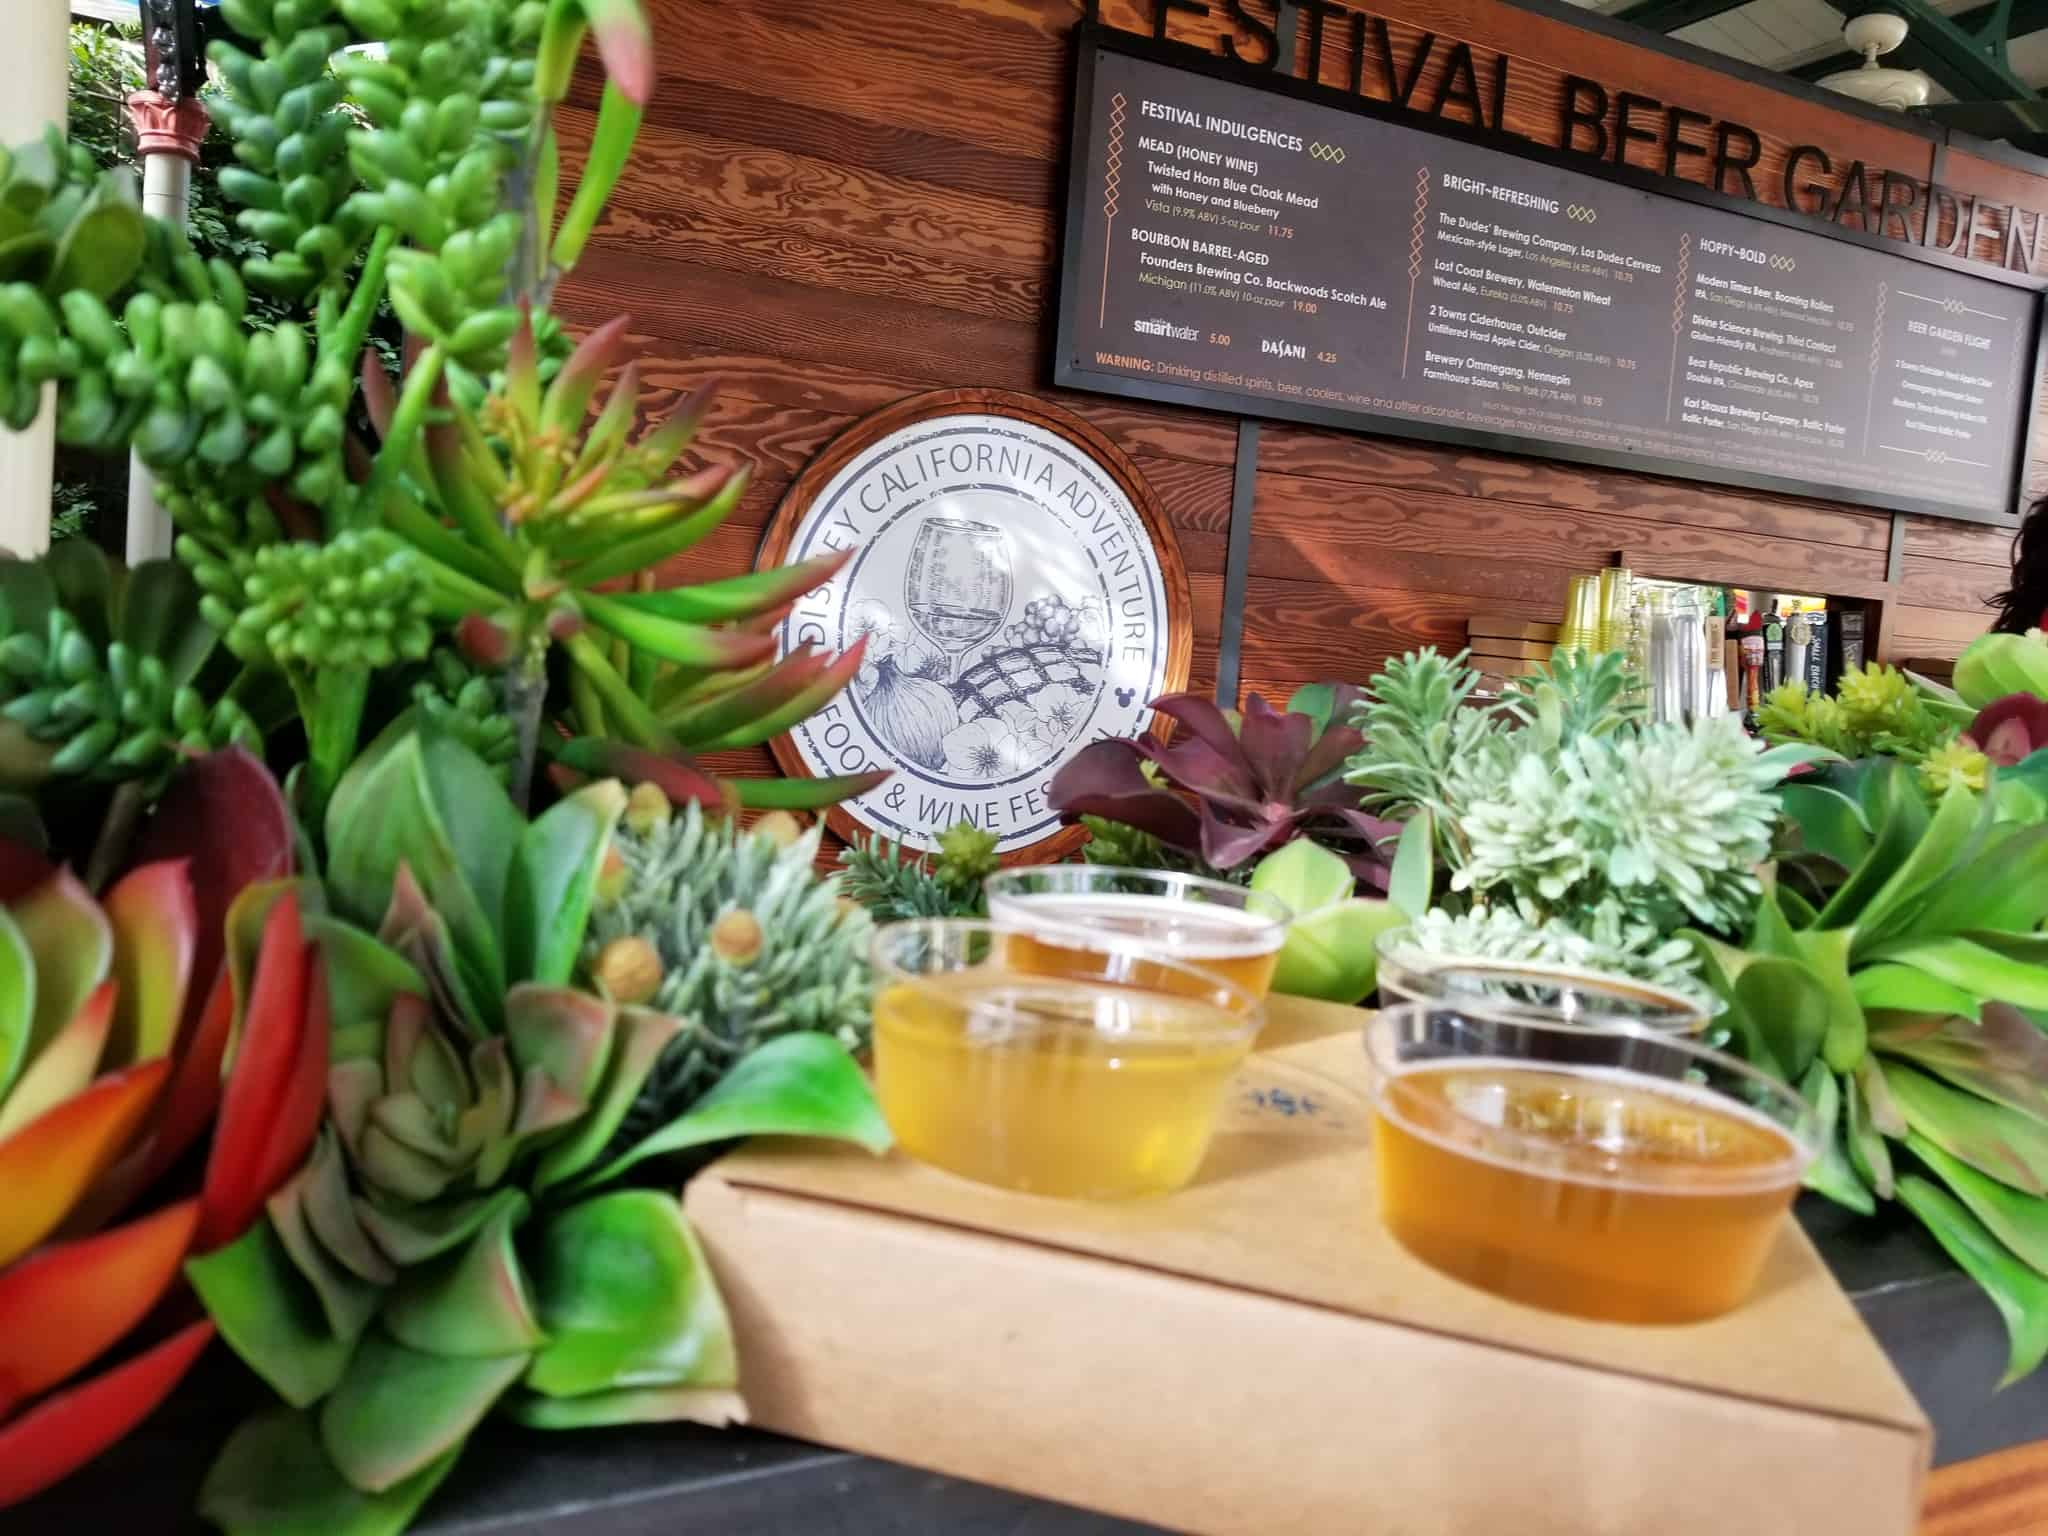 Disneyland Resort Disney California Adventure Food & Wine Festival 2019 beer flight menu